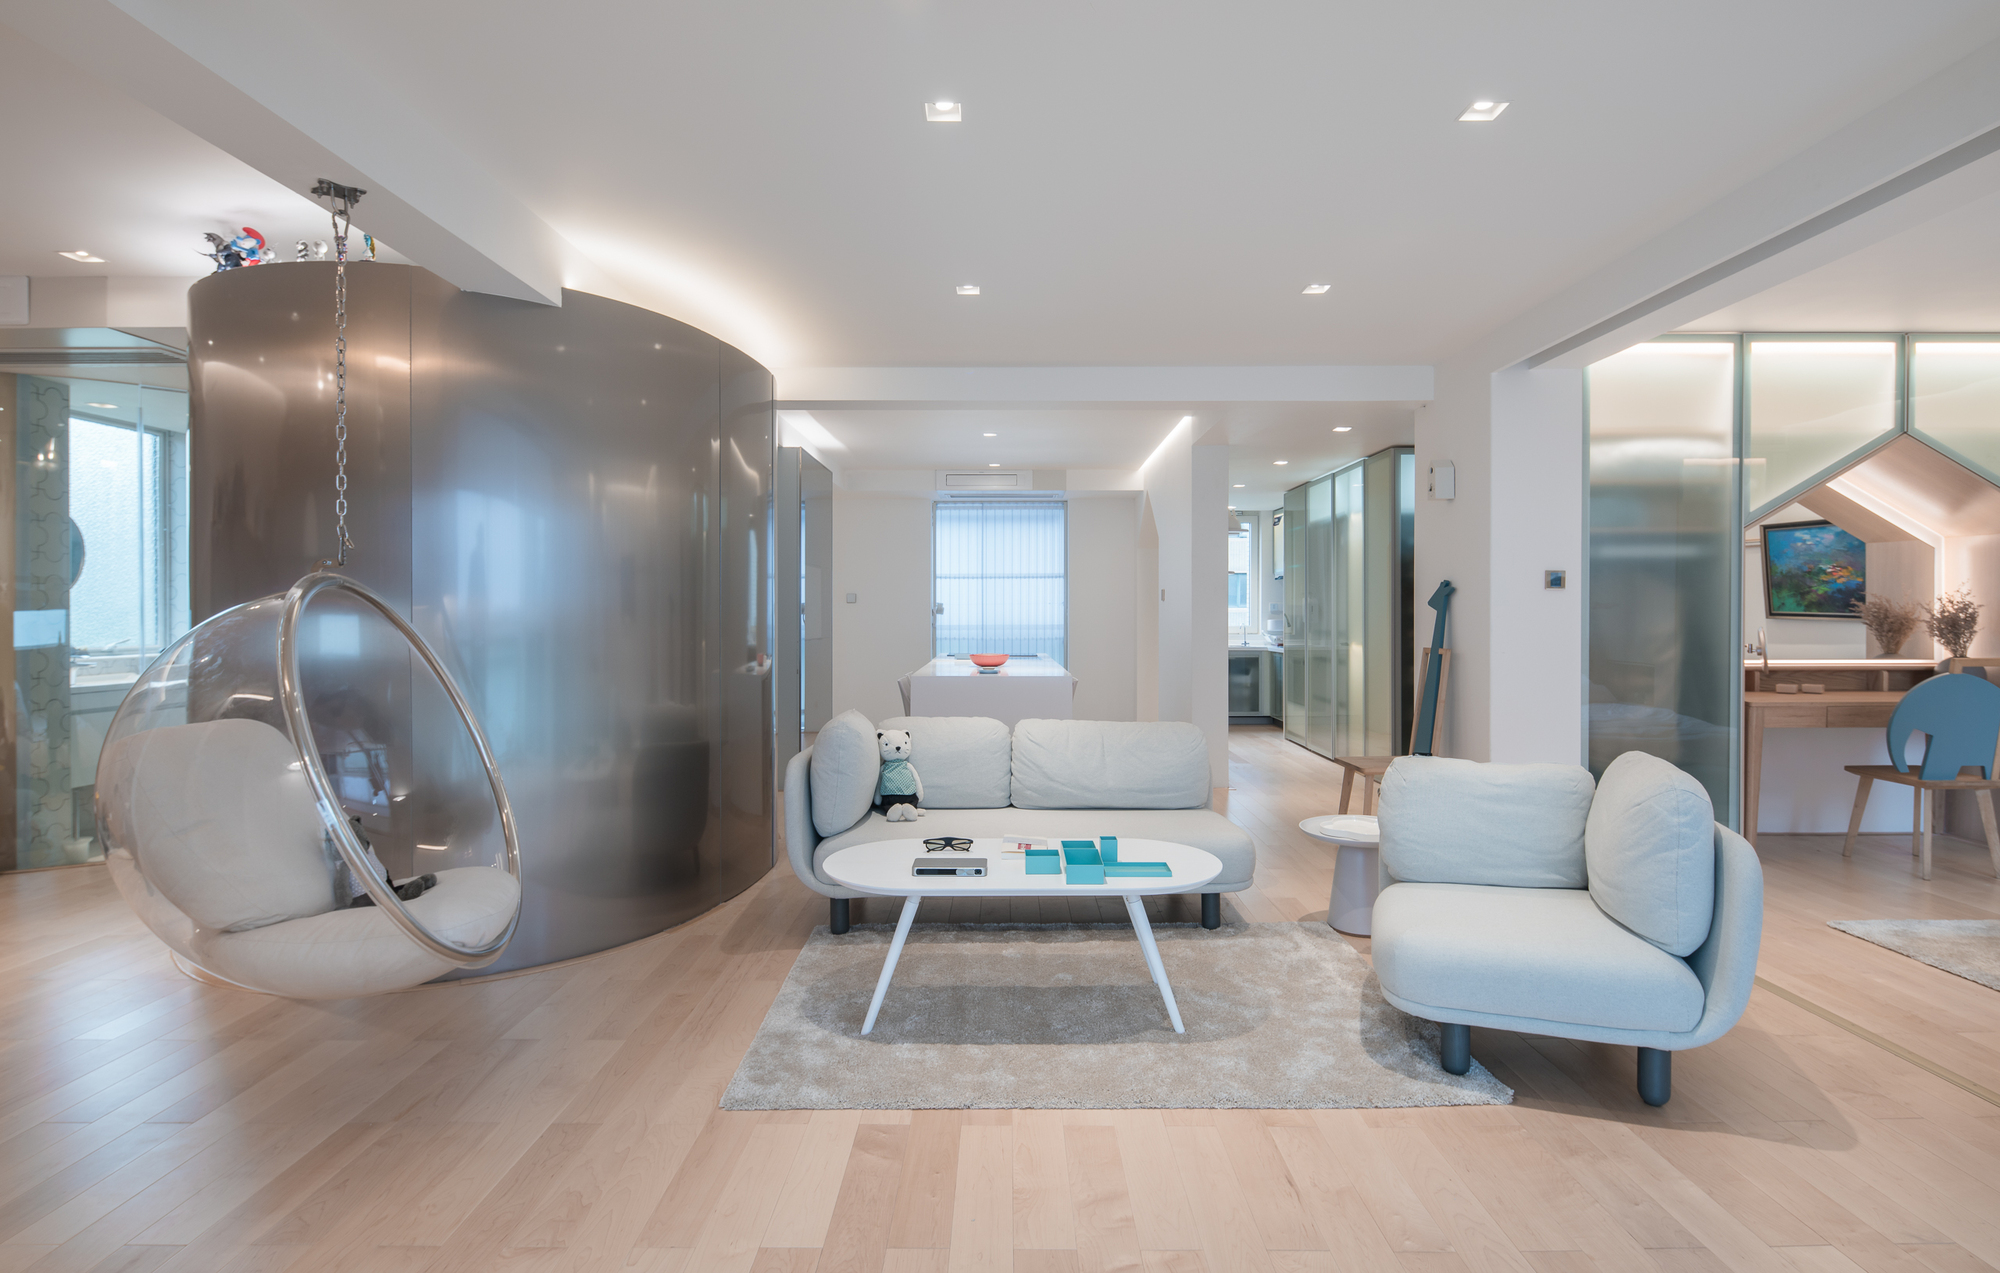 Gallery of home wonderland in shanghai wutopia lab 1 for Lab homes